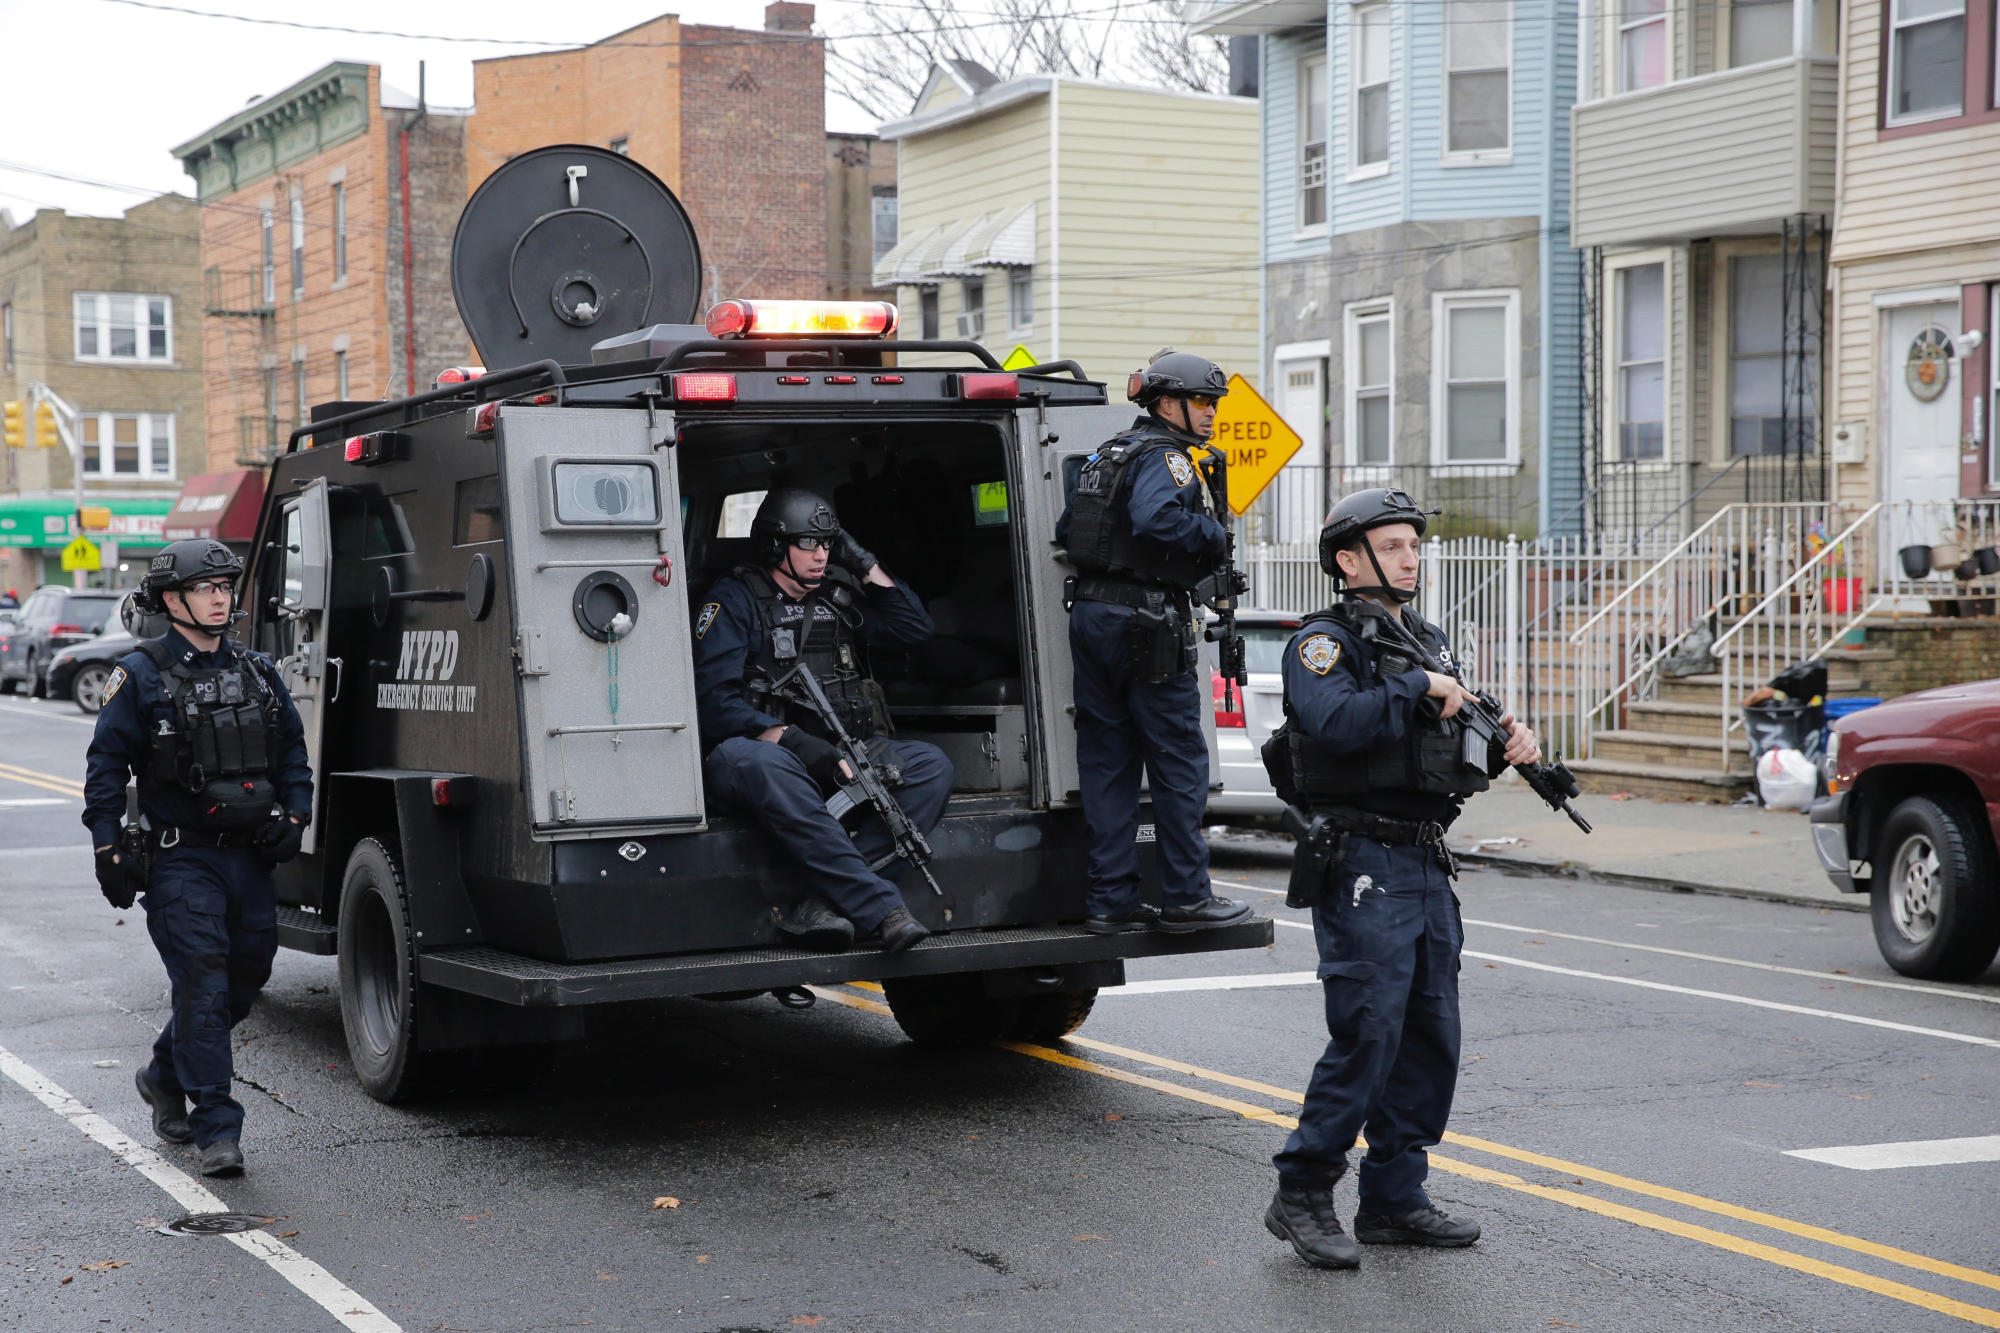 Jersey City Marks 1 Year Since Deadly Bias Attack